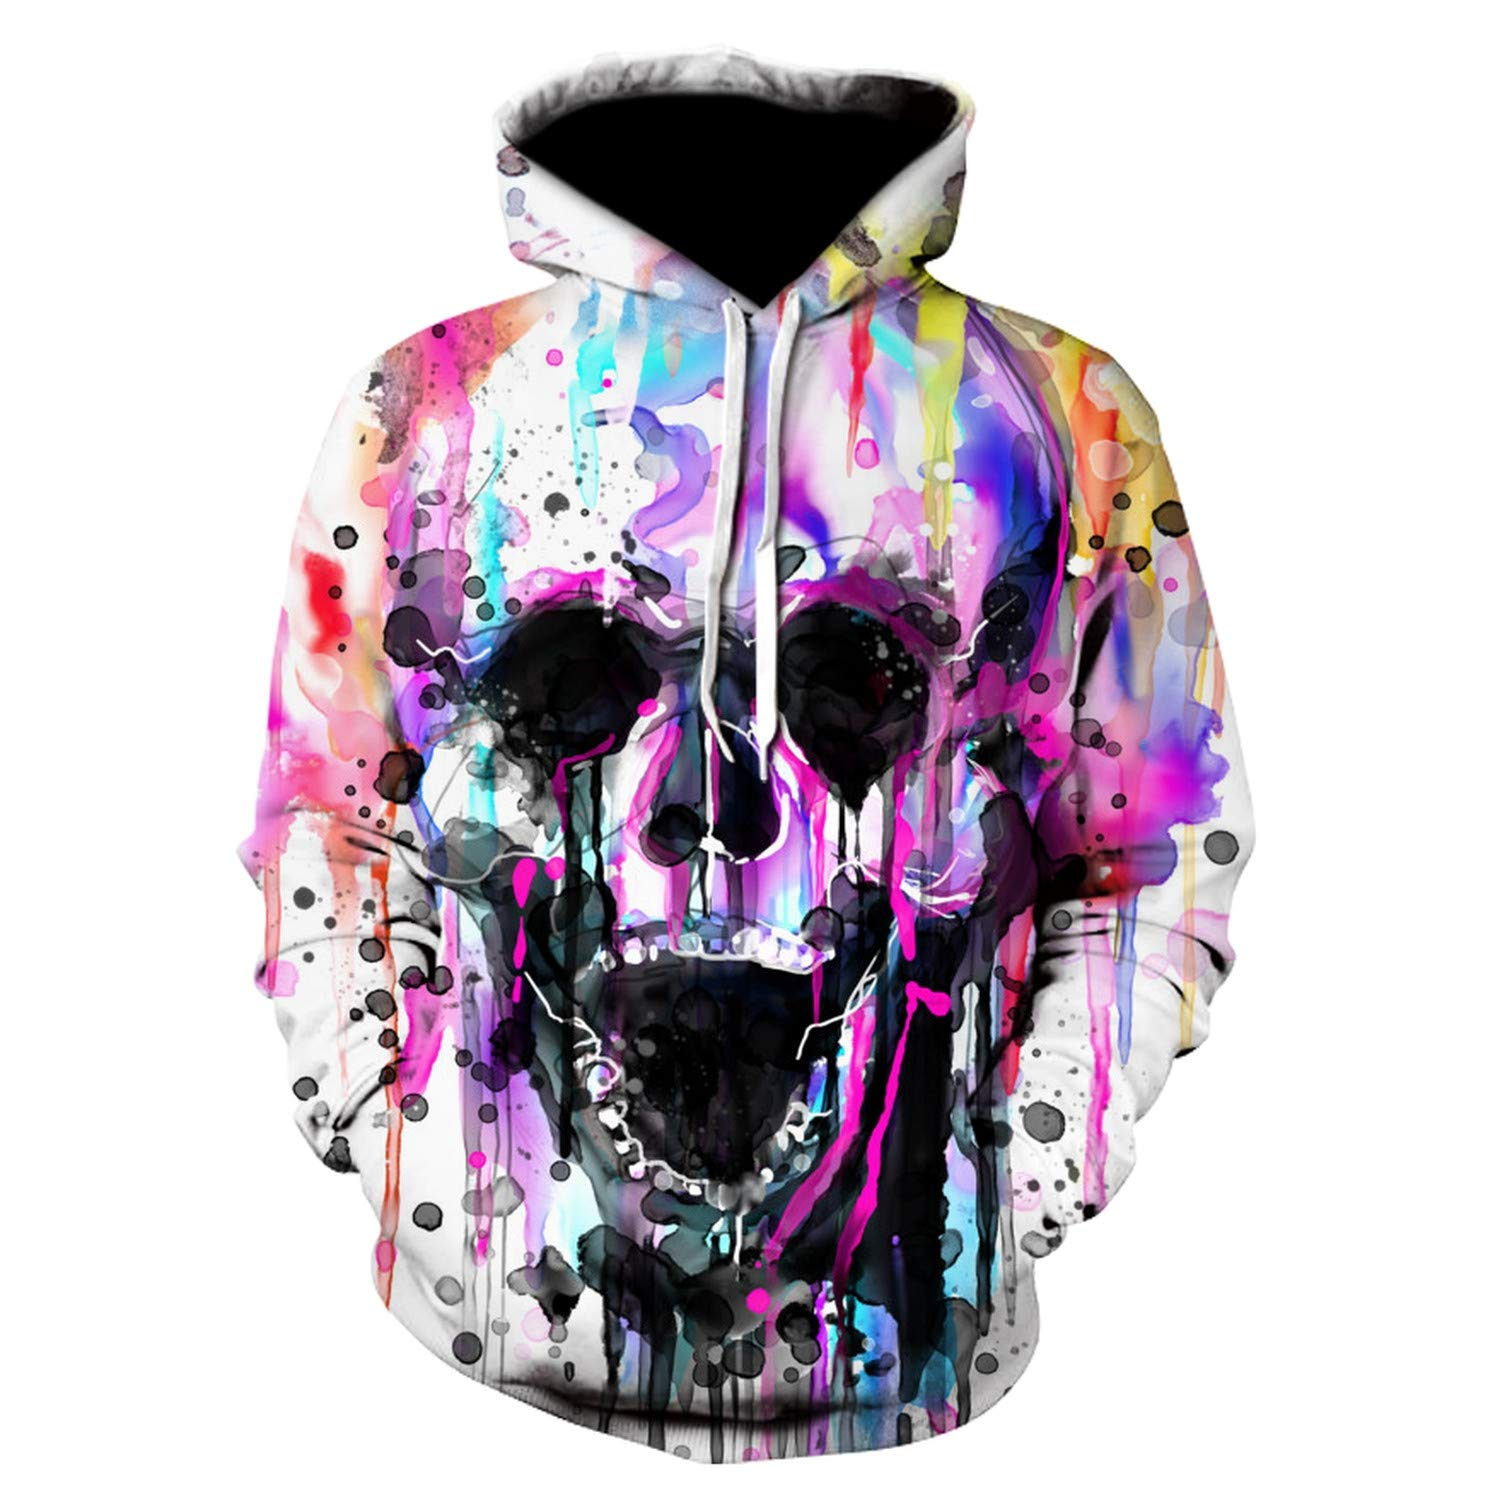 Gutuomy Women Men 3D Sweatshirts Pullover Novelty Tracksuit Fashion Hooded Streetwear Autumn Casual Jacket Picture Color XL